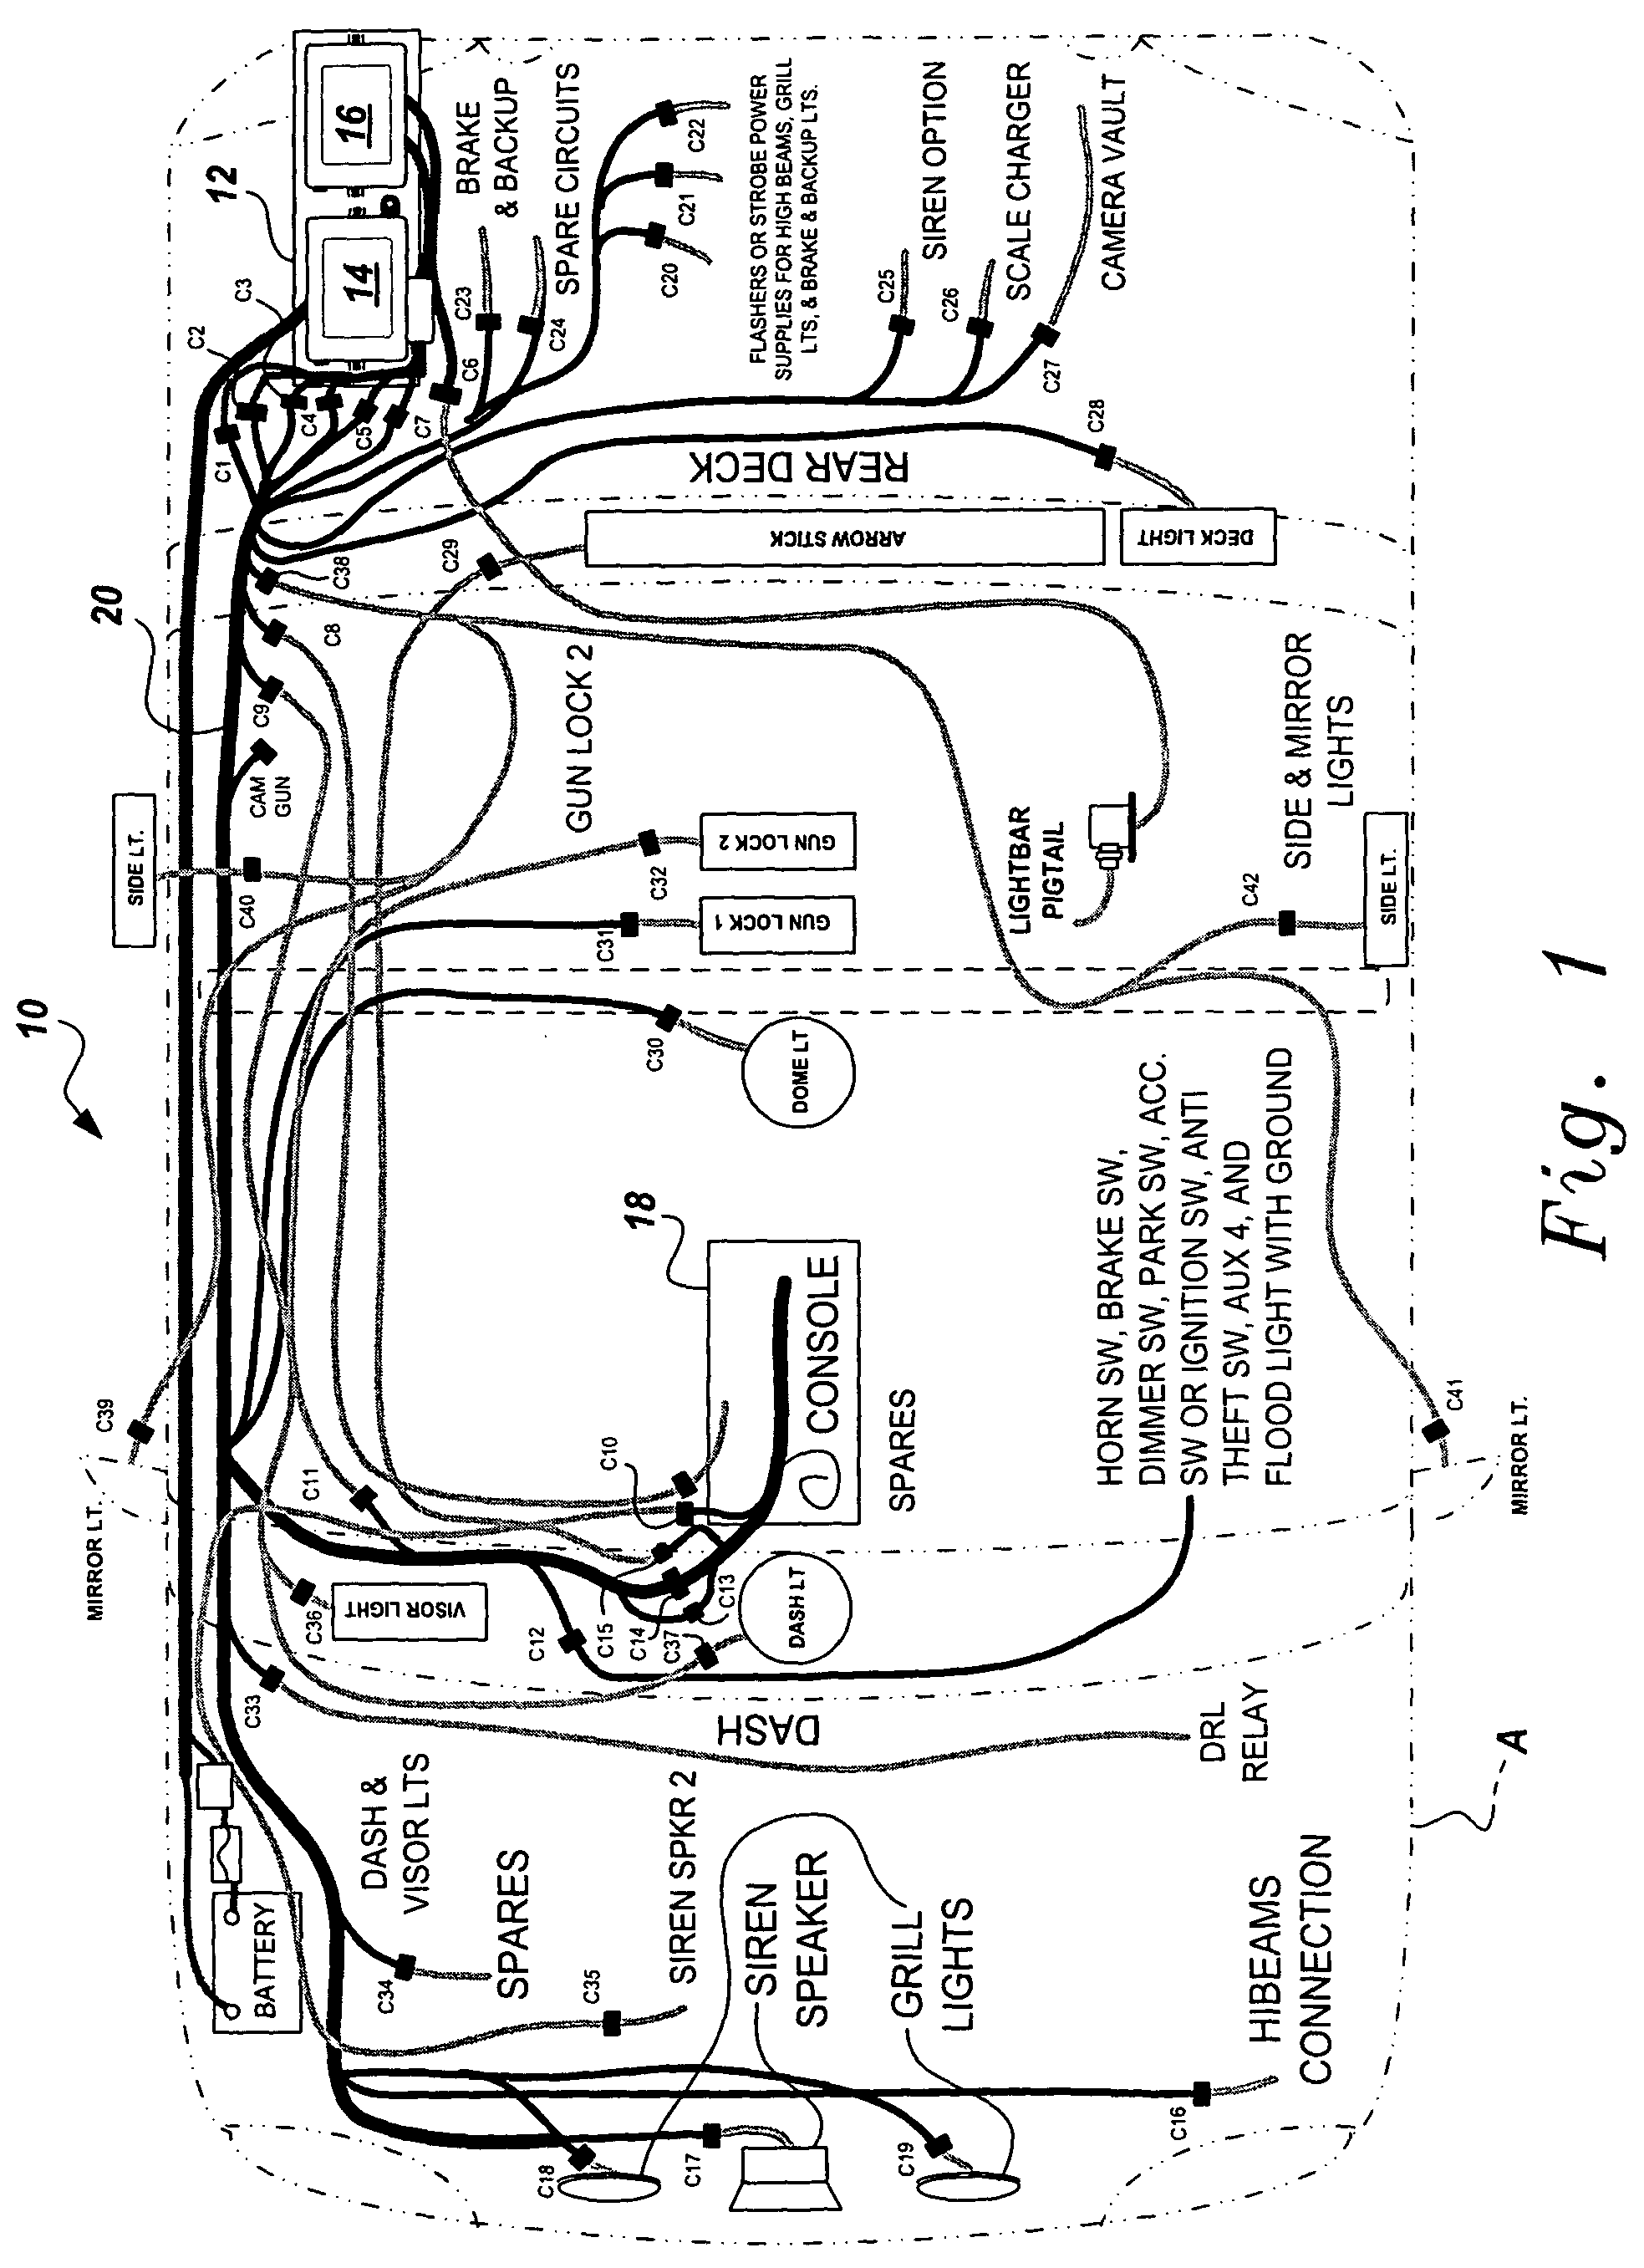 cat c7 ecu wiring diagram with Cat C7 Ecm Wiring Diagram on 7btar F650 Ford F650 2008 Model Cat Engine C7 together with International 4700 Wiring Diagram Pdf likewise Caterpillar C7 Engine Diagram moreover Cat C7 Front Cover Wiring Diagrams further 91 Dodge Dakota 5 2 Fuel Pump Wiring Diagram.